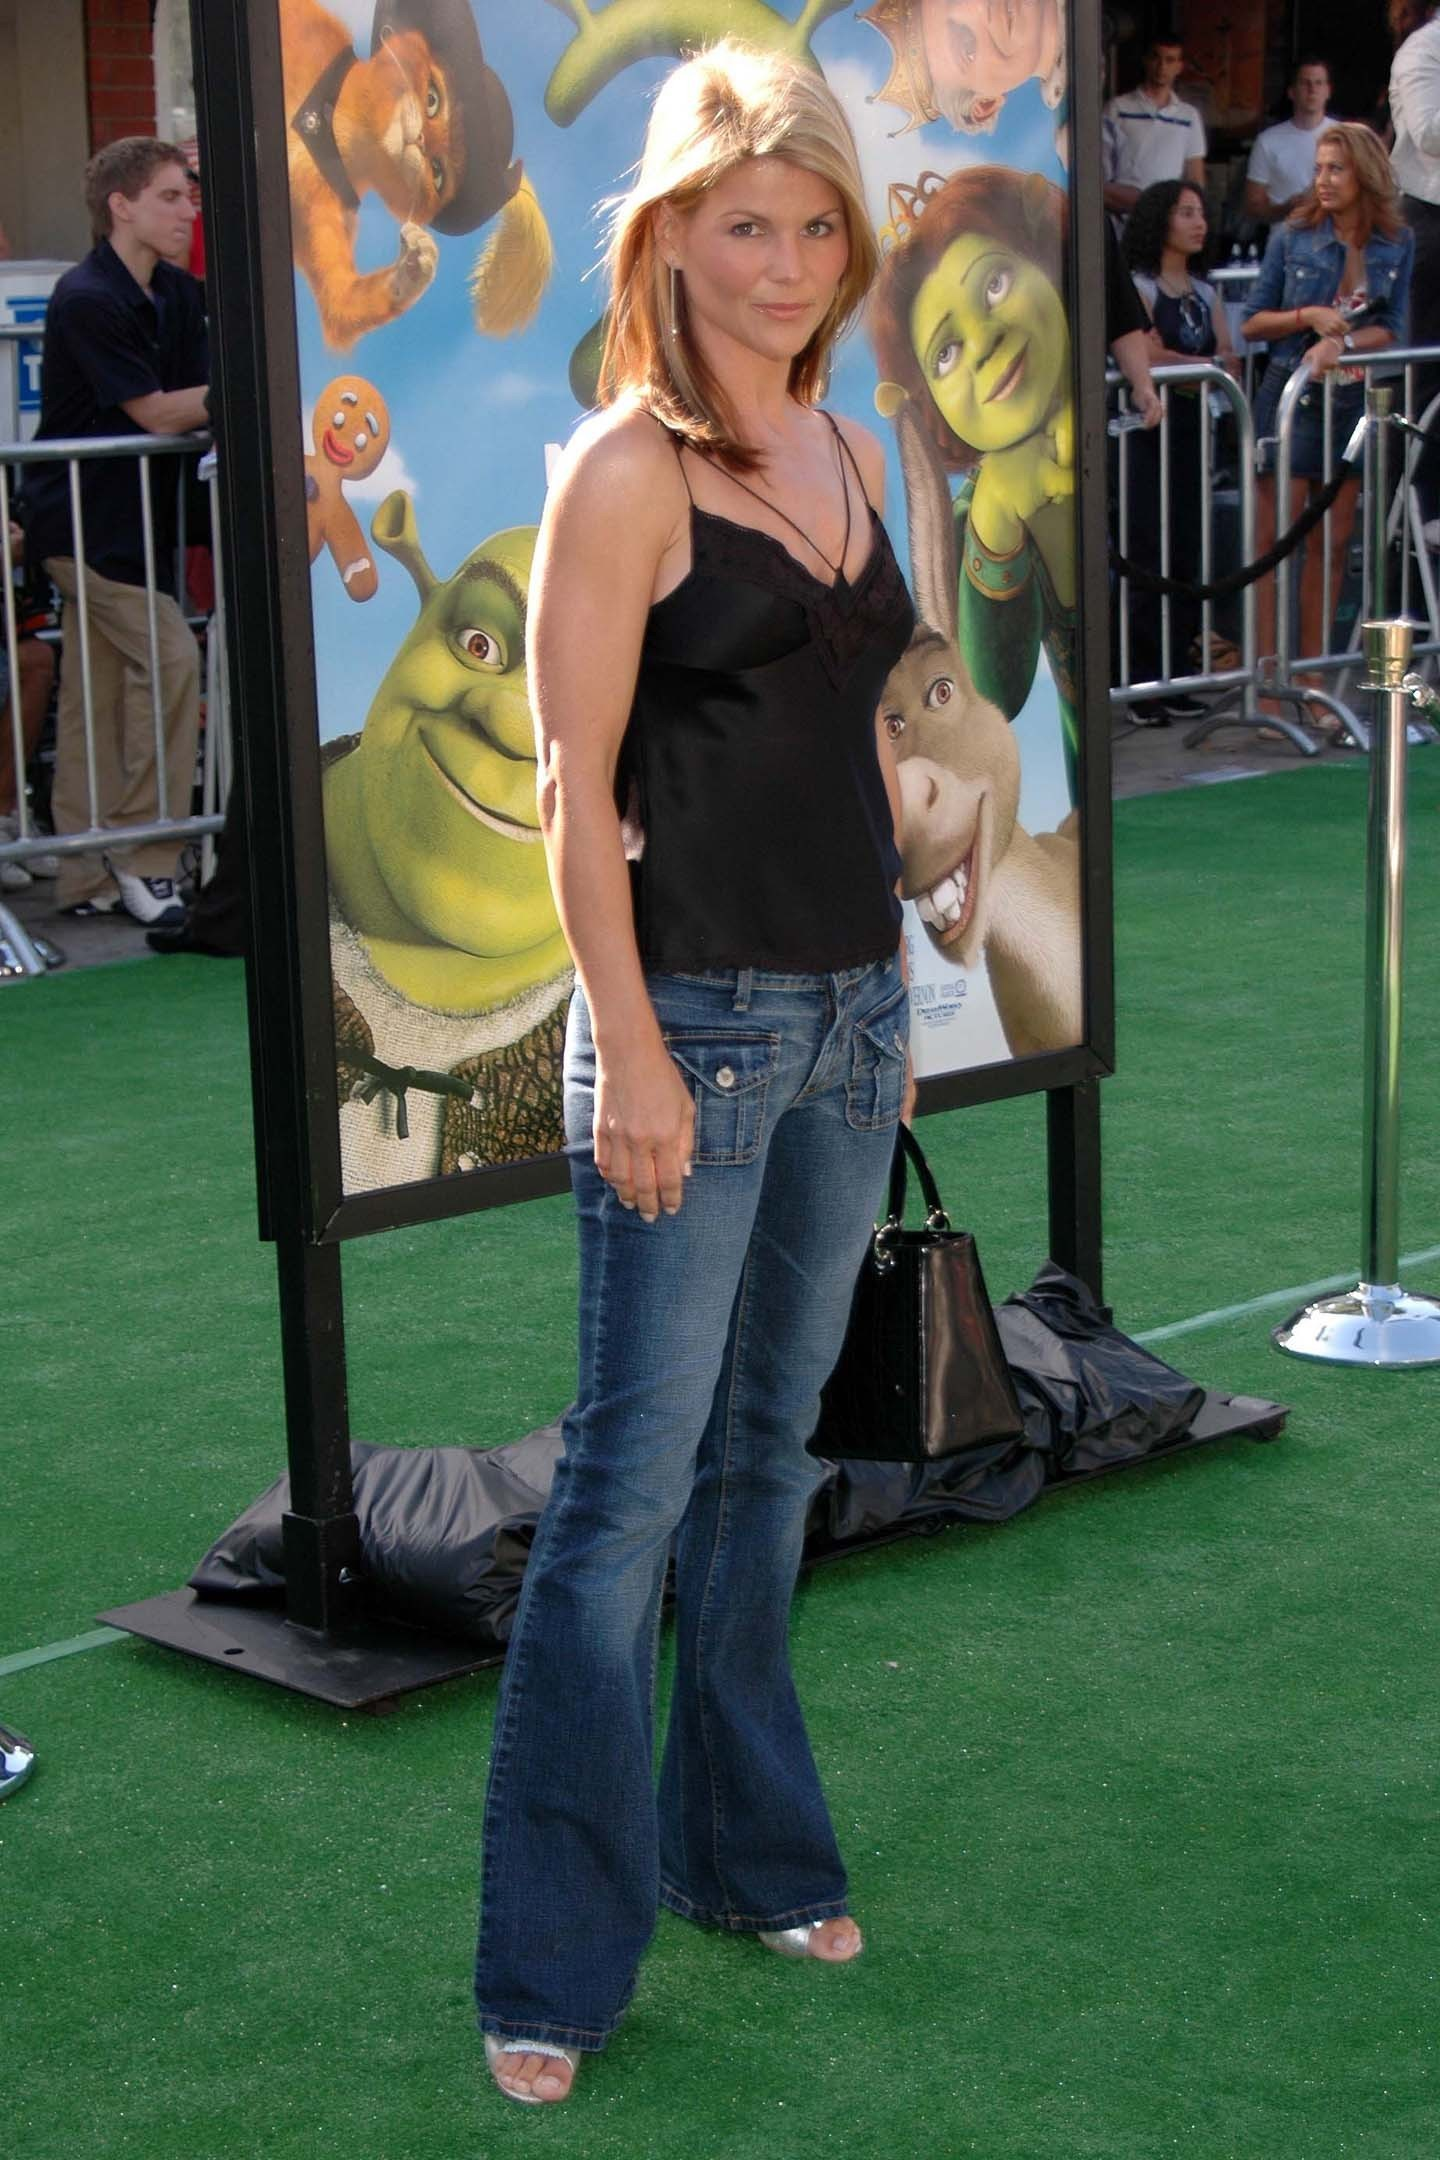 Res: 1440x2160, Lori Loughlin images Shrek 2 Premiere HD wallpaper and background photos